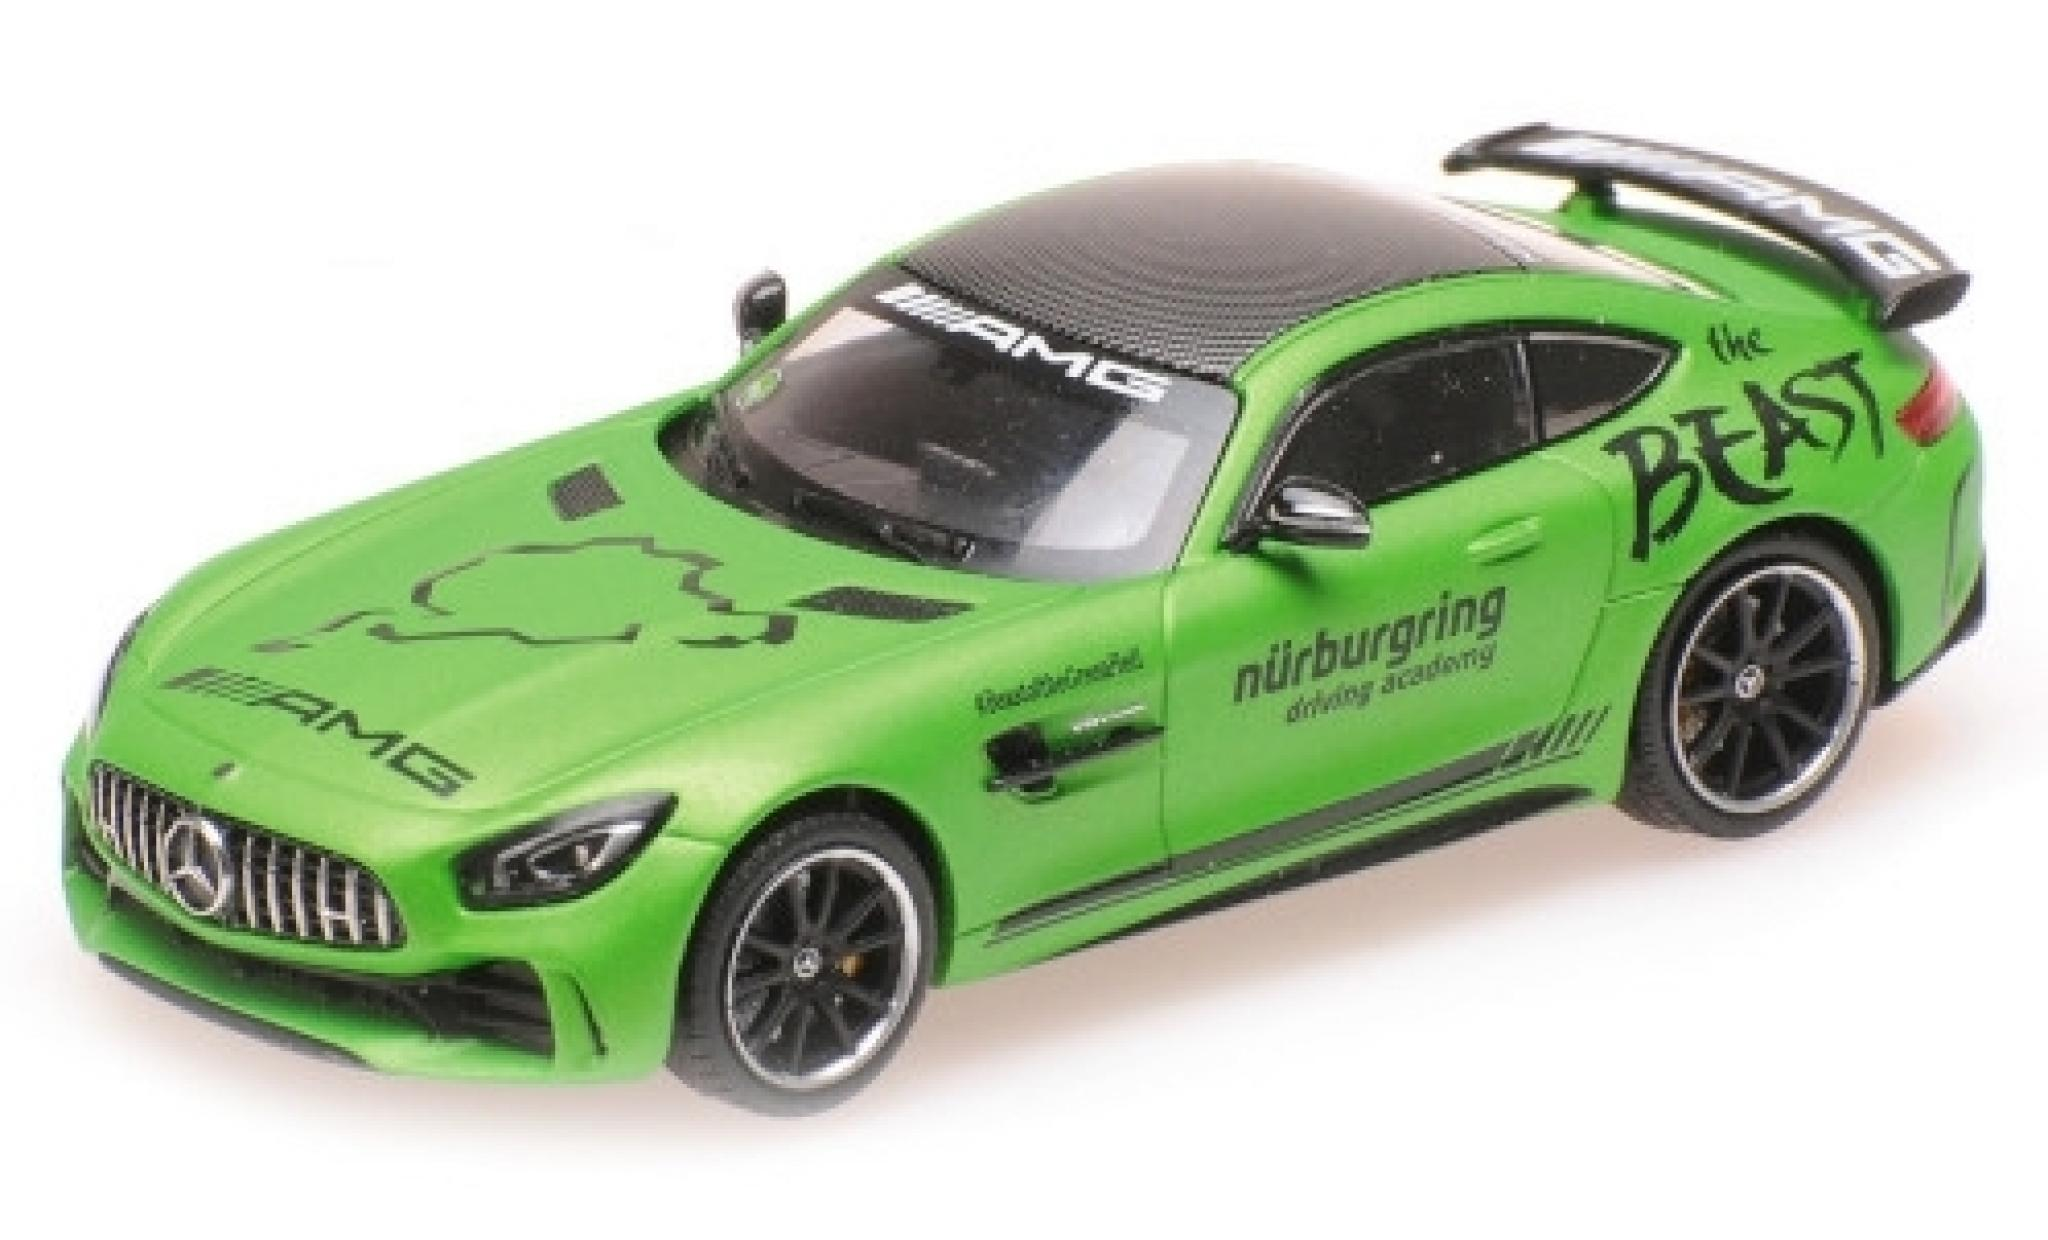 Mercedes AMG GT 1/43 Minichamps -R Ringtaxi - The Beast 2018 Beast of the Green Hell